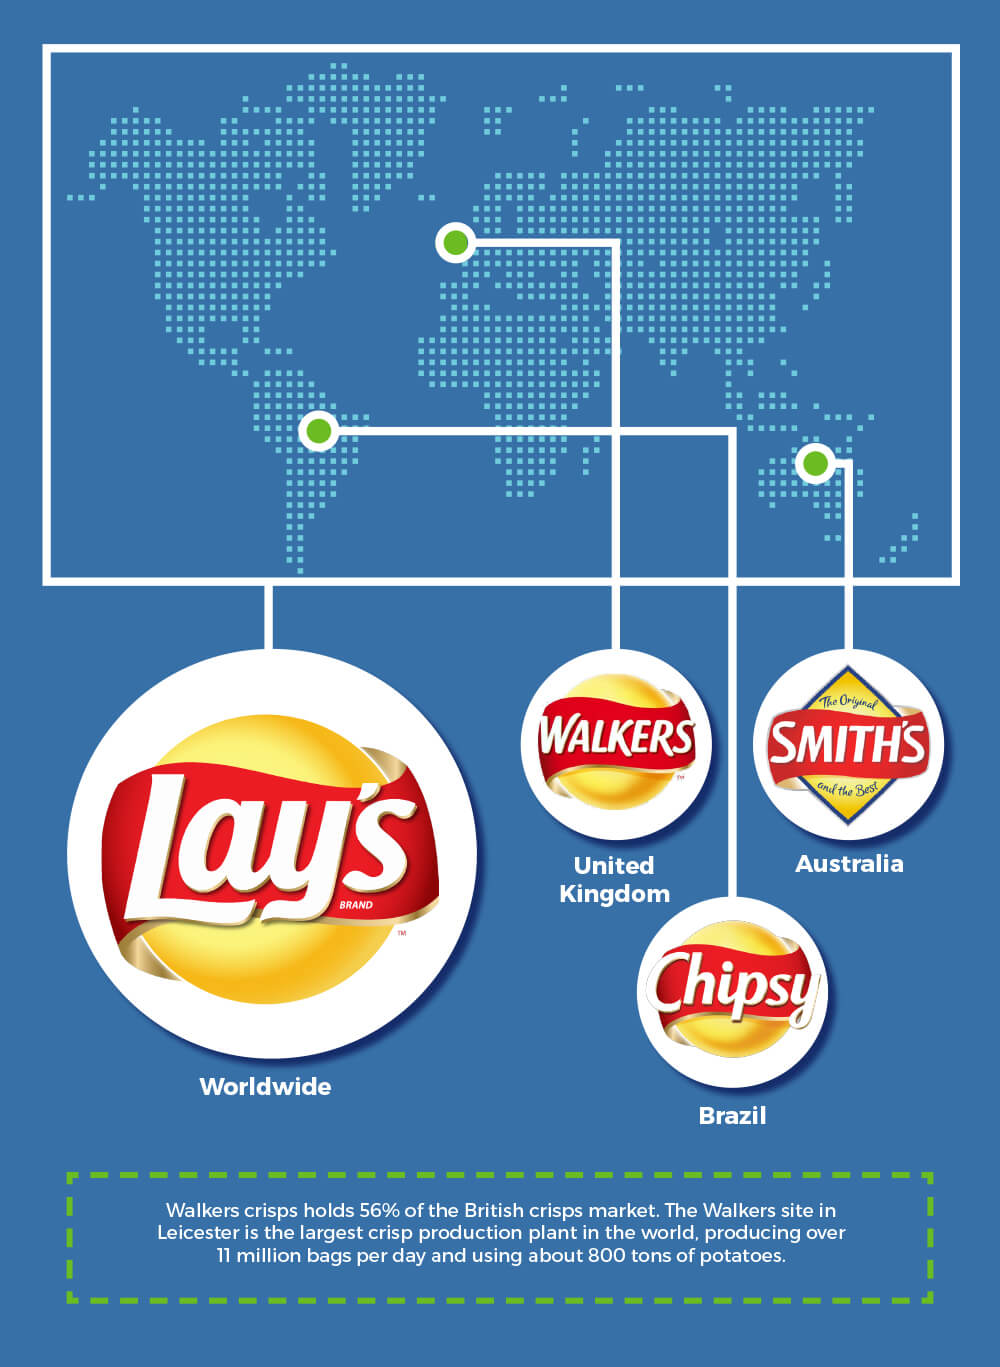 Walkers, Smiths, or Lays - Three Names, Same Brand